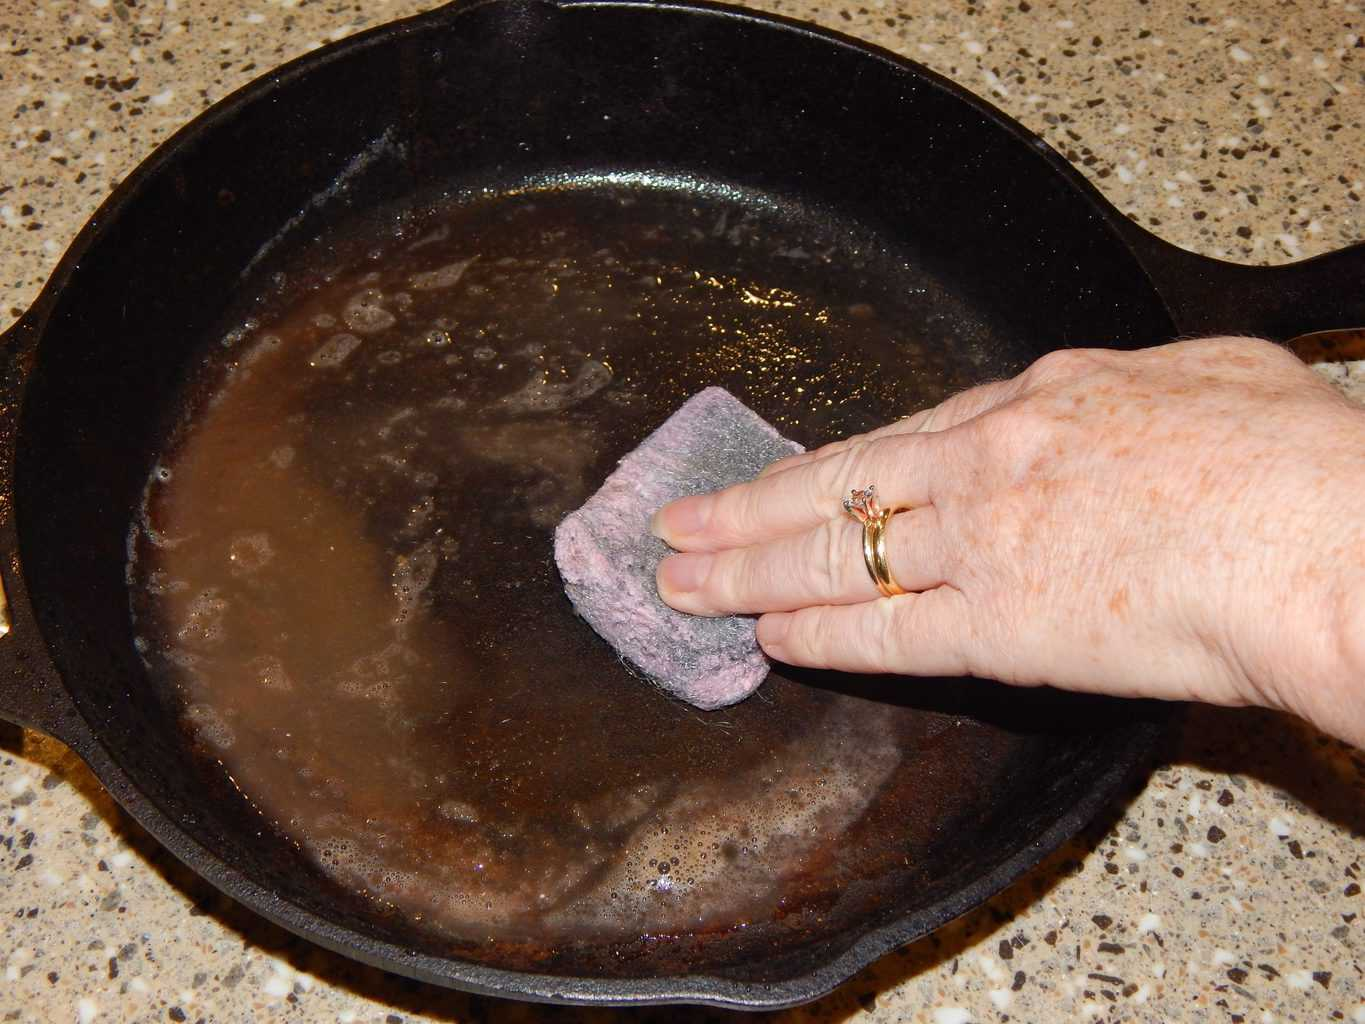 Washing your cast iron skillet